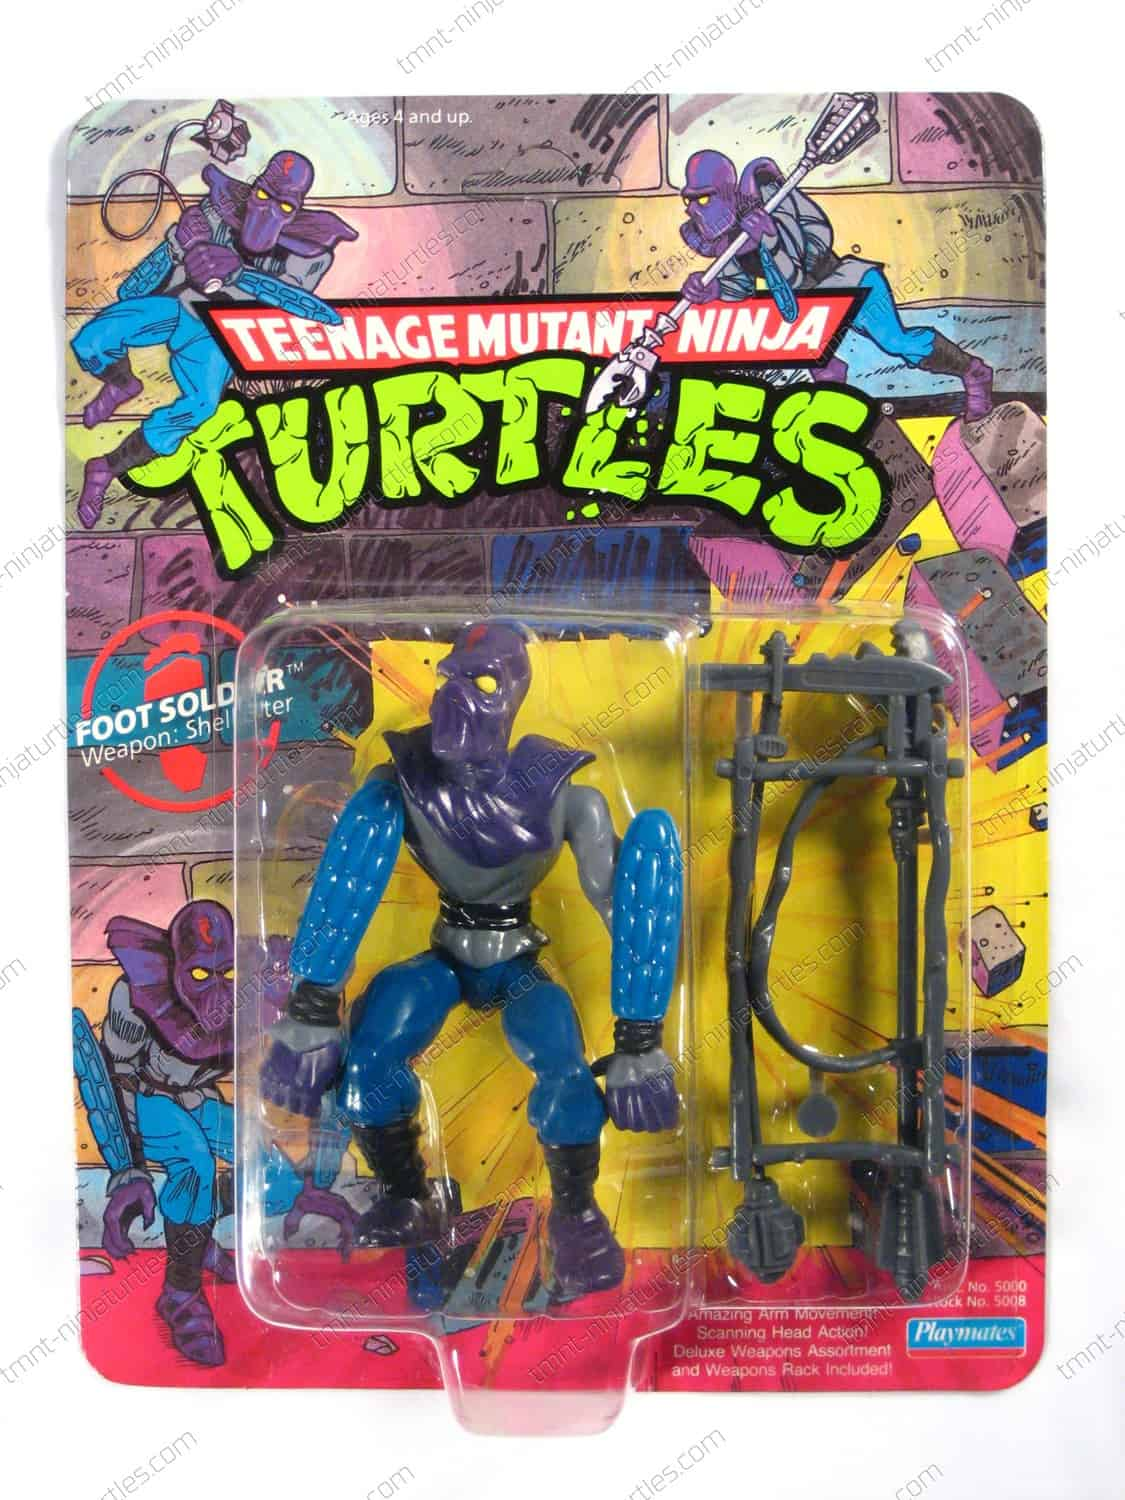 Playmates teenage mutant ninja turtles 1988 1992 for Foot soldier